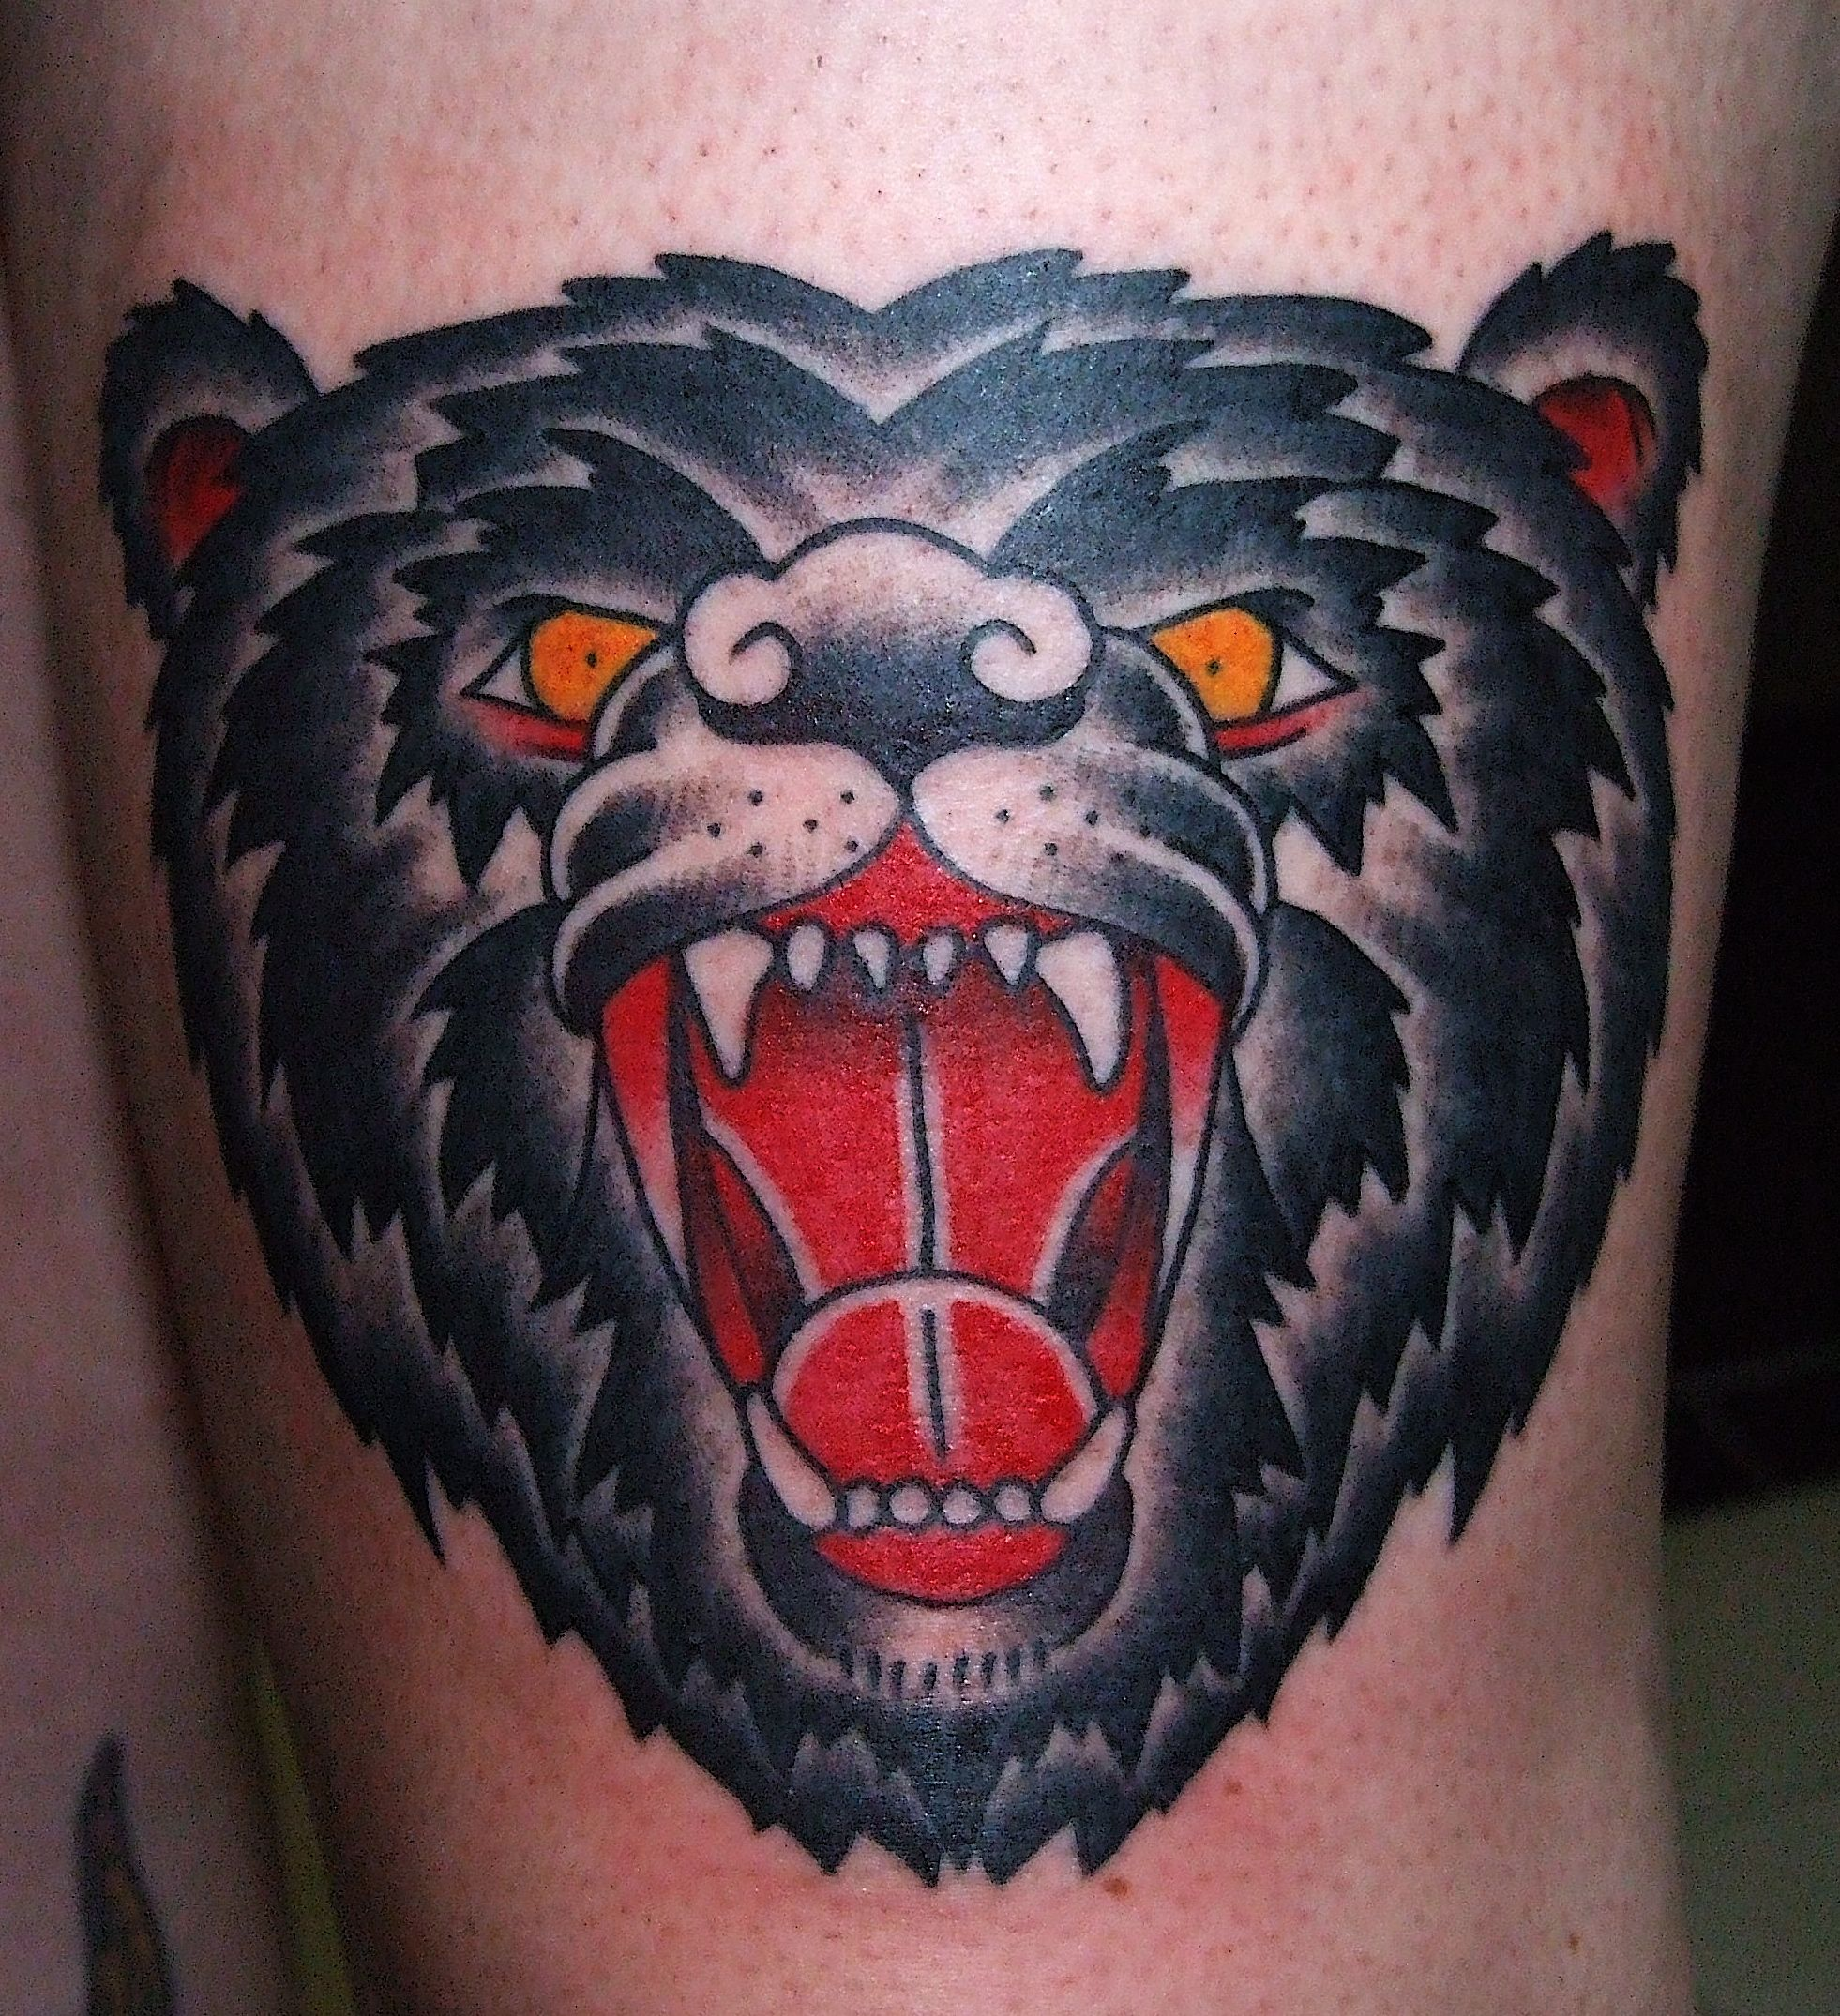 Bear Head - Bear Tattoo photo - 1 | Tattoo ideas ...